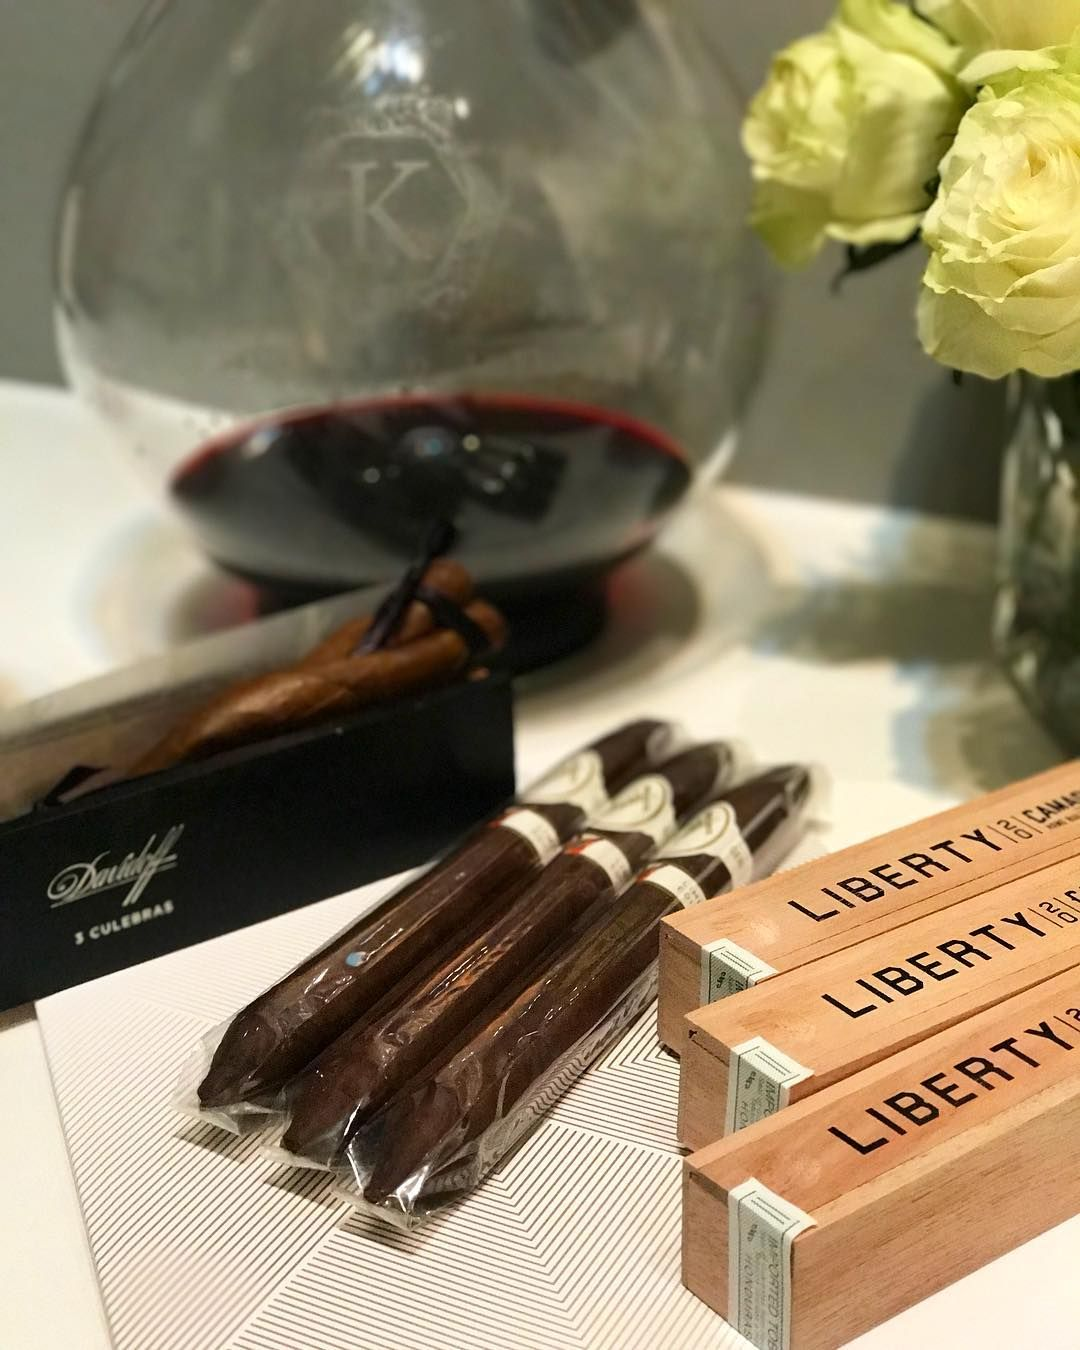 Just Got Some Nice Cigars From Davidoffcigars Thank You Konradlifestyle Davidoff Cigars Cigar Winetime Wineoclock Luxus Luxury Luxus